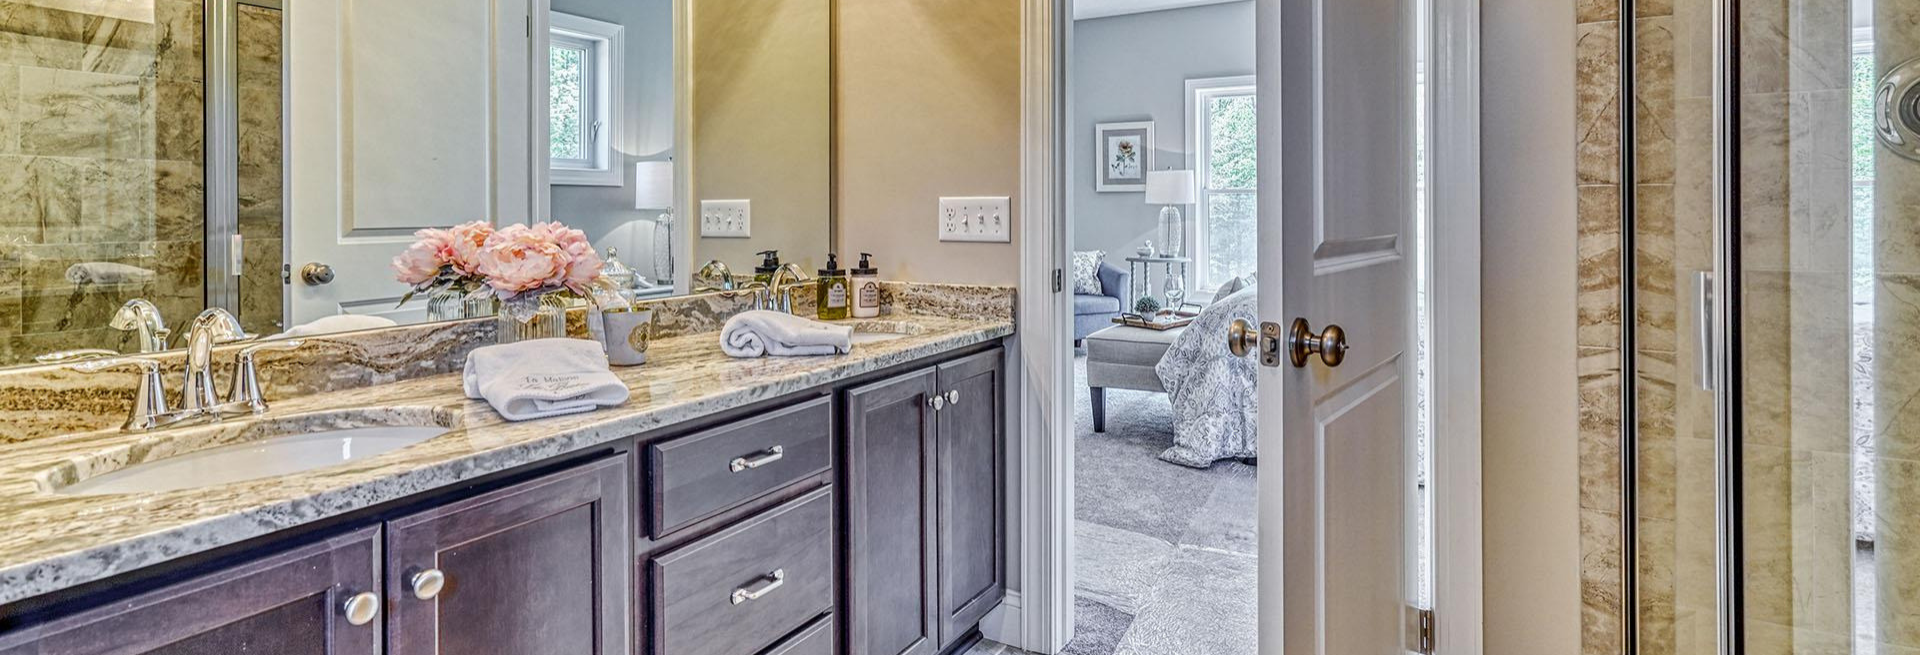 Bathroom Remodeling in Rochester, NY | Gerber Homes